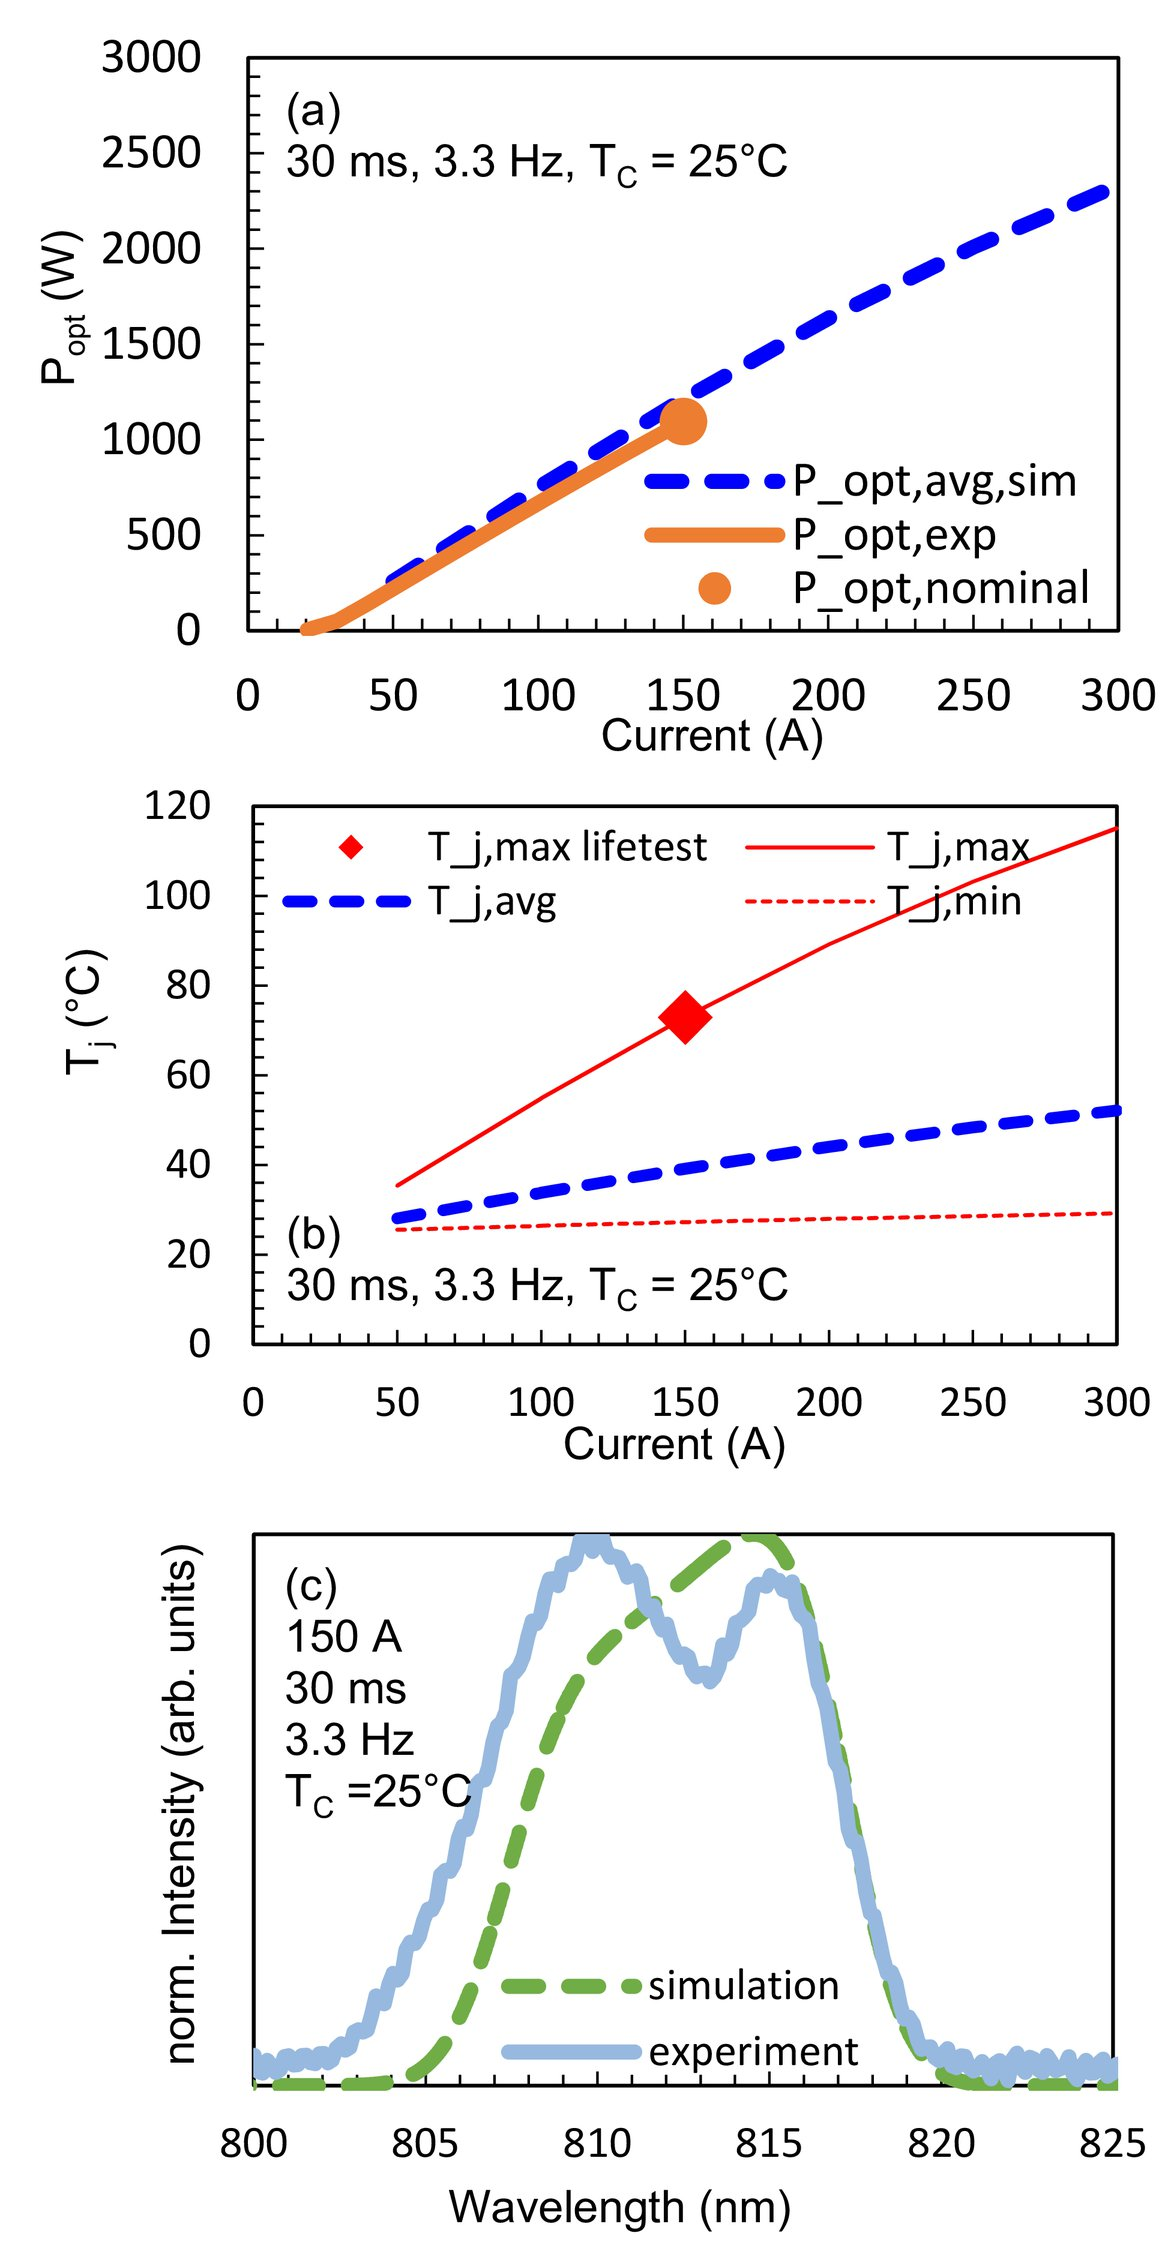 Thermal modelling of laser diode packages